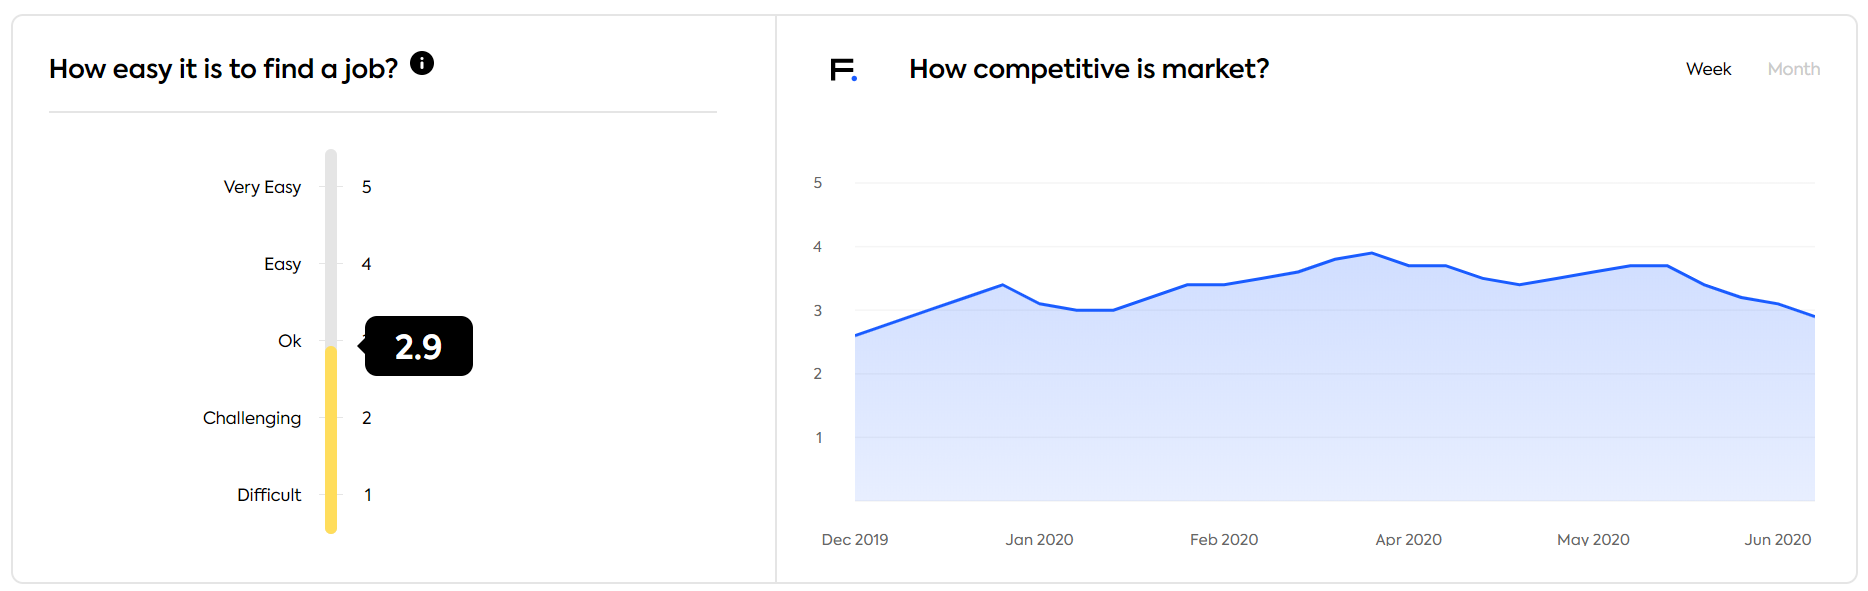 market competitiveness in Lithuania